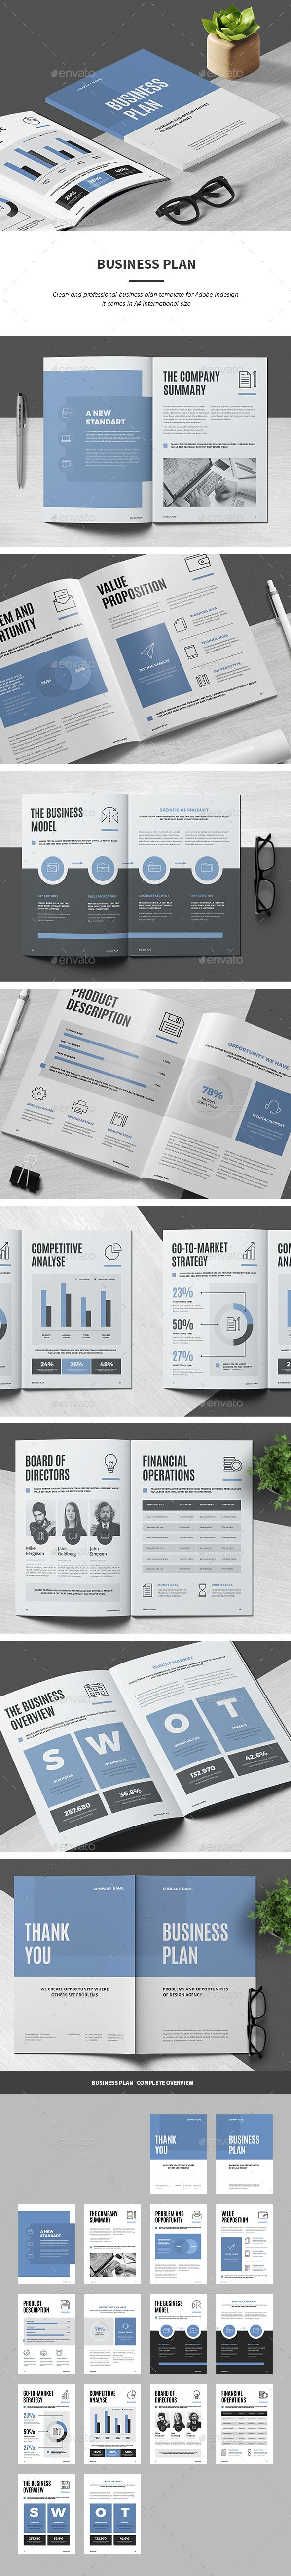 Business Plan — InDesign INDD #modern #company • Download ➝ https://graphicriver.net/item/business-plan/19465099?ref=pxcr